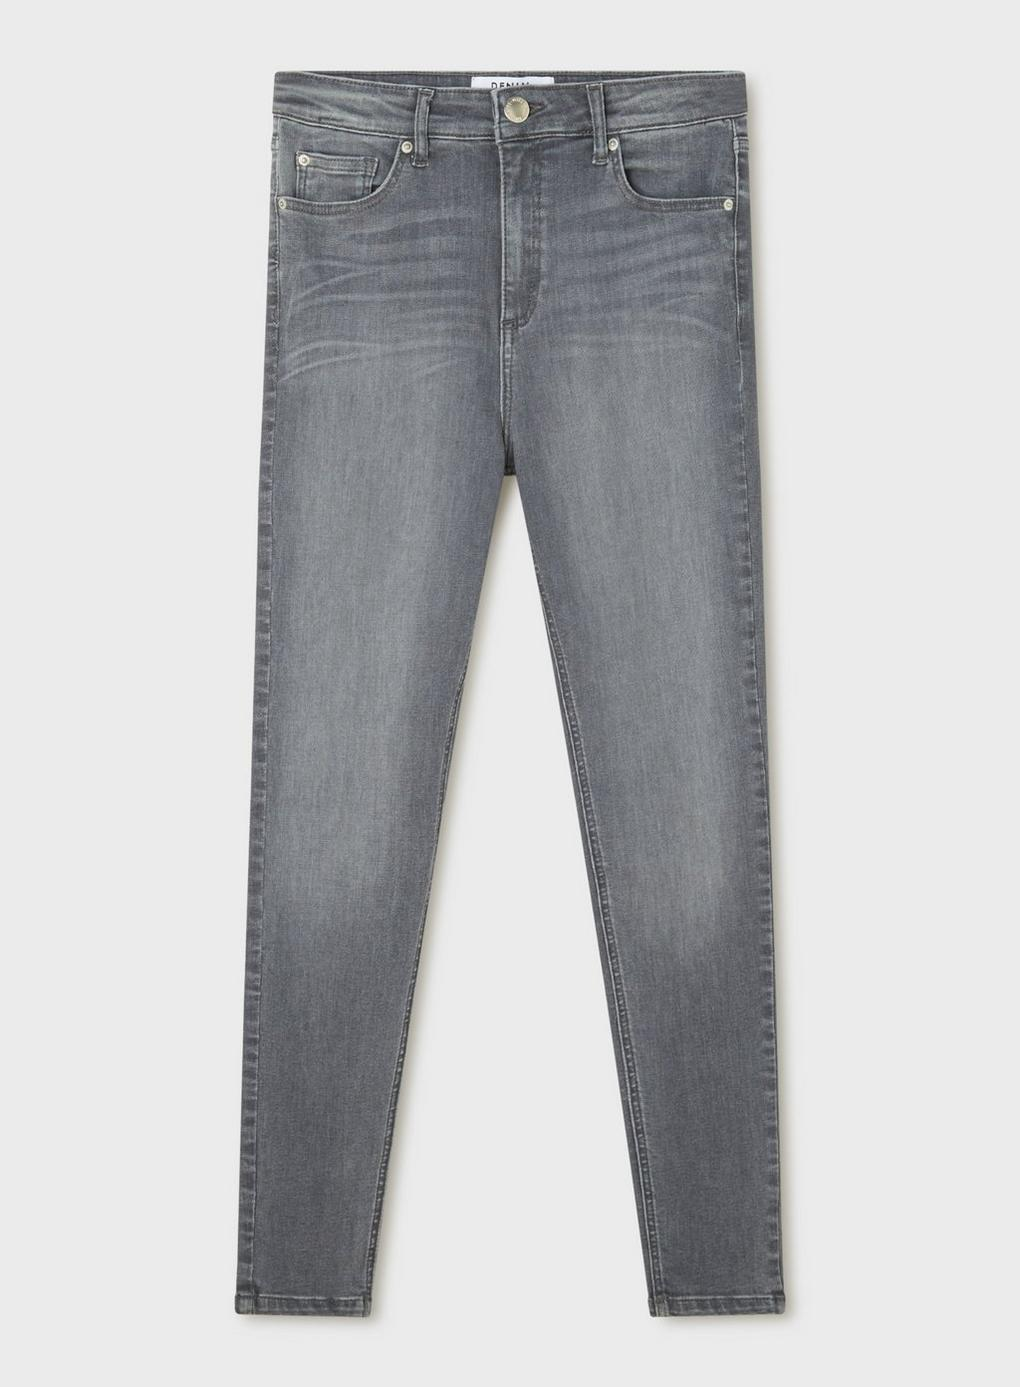 Miss Selfridge Denim Lizzie High Waist Super Skinny Grey Jeans in Grey